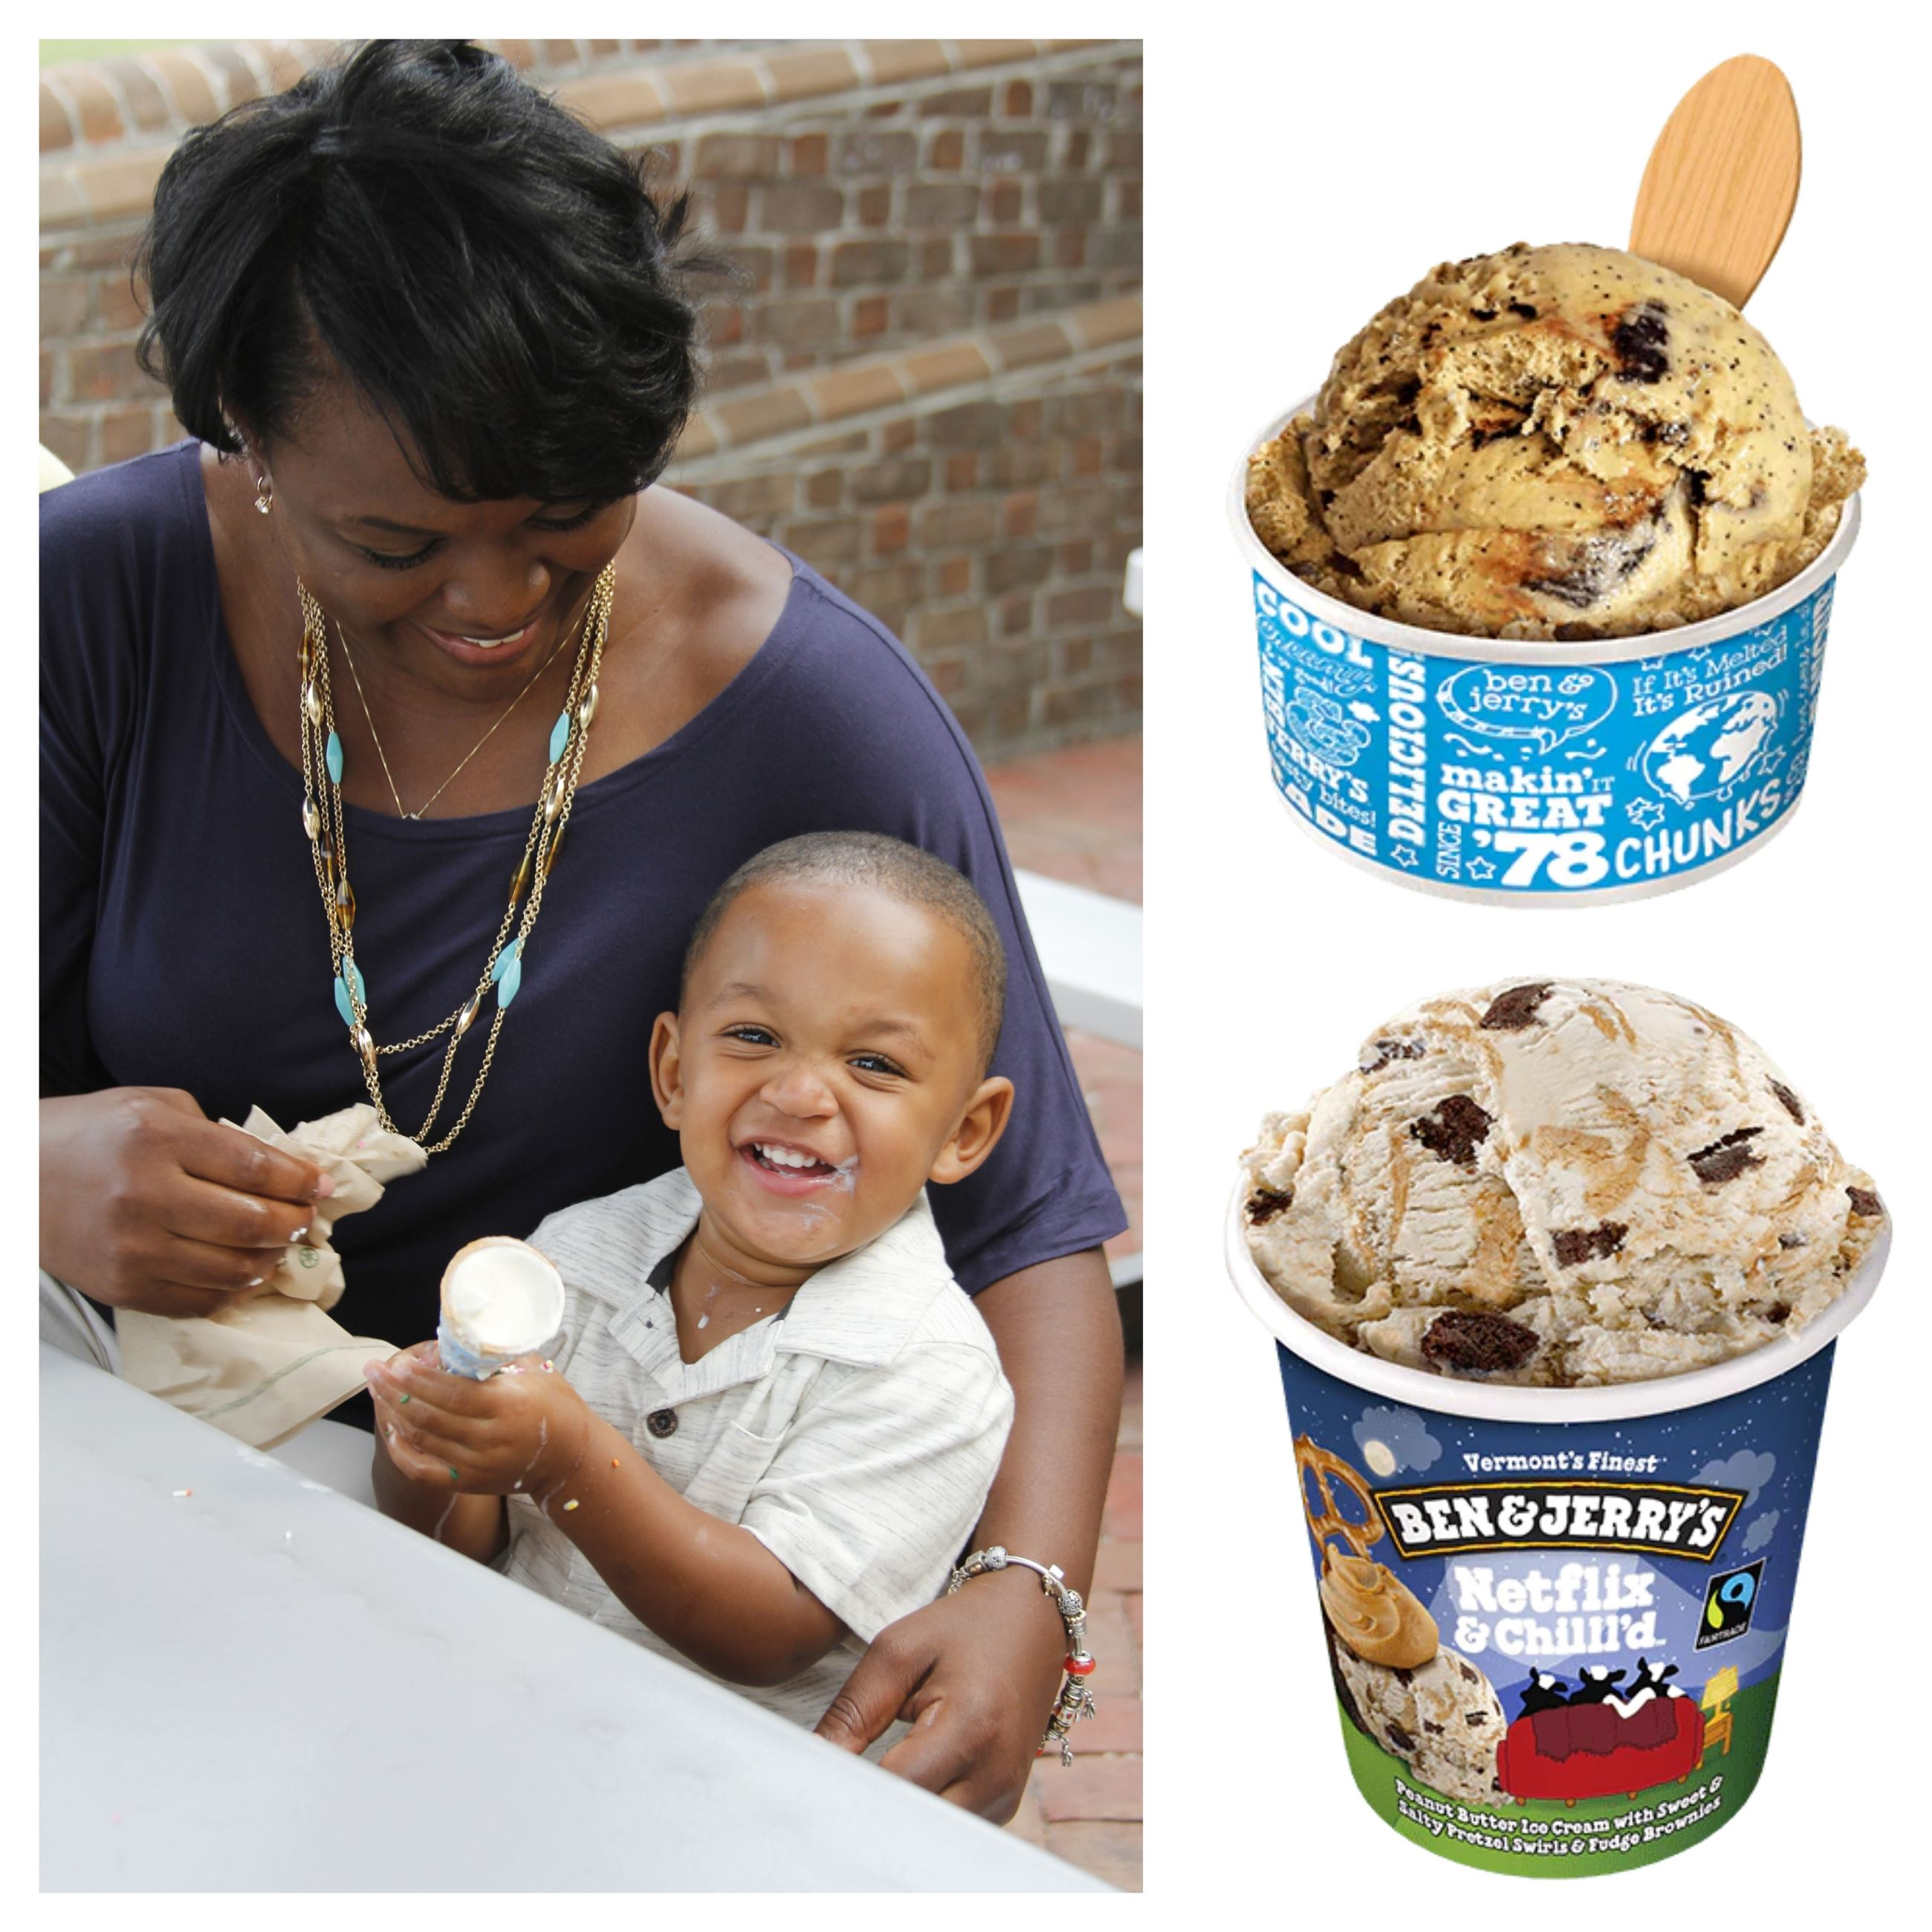 Ben and Jerrys new ice cream flavors